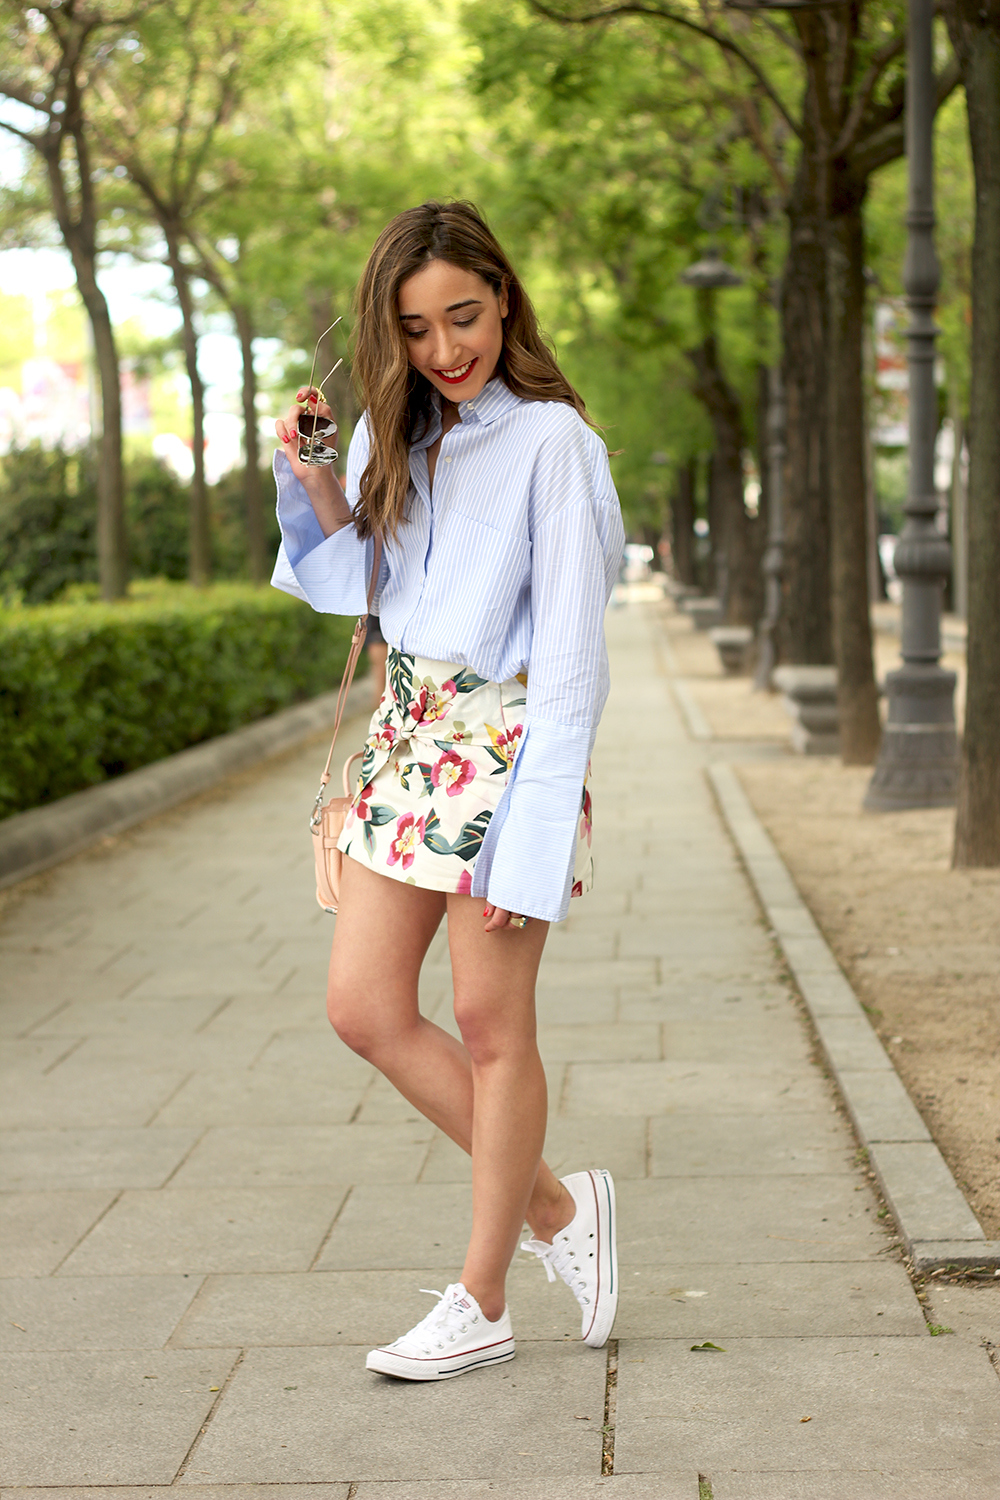 Floral print shorts striped shirt converse summer style fashion04